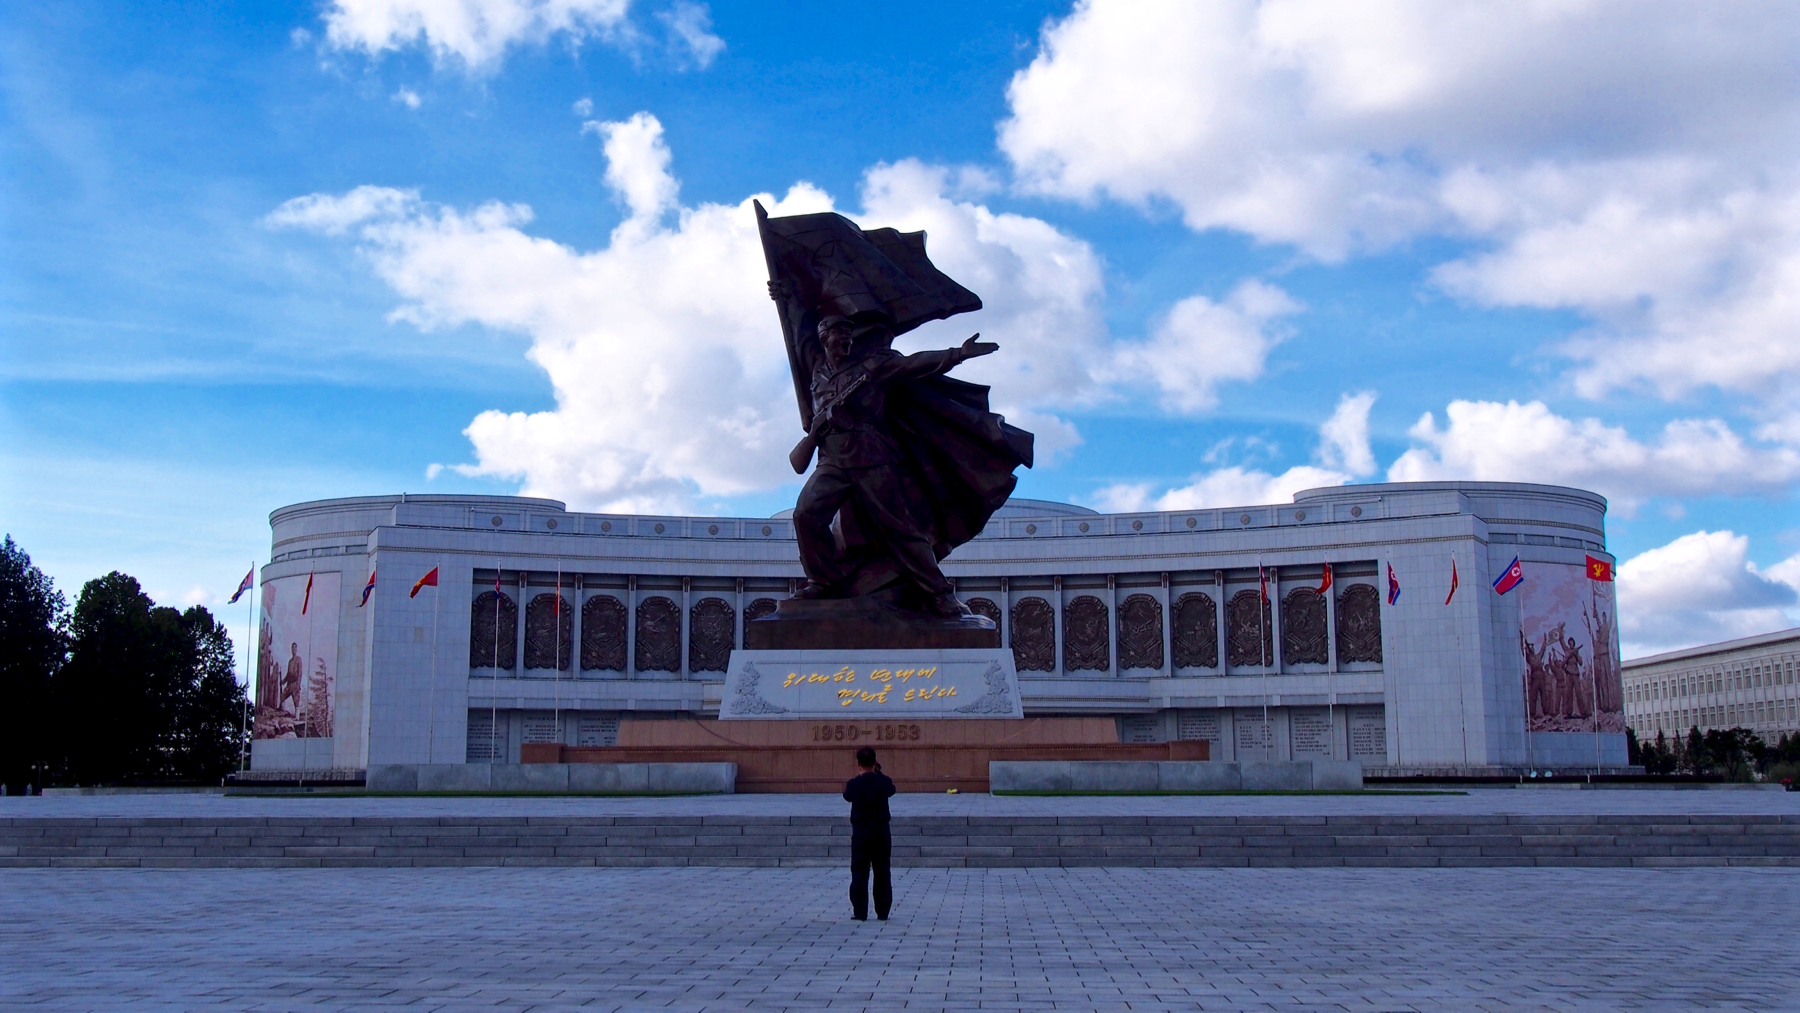 The war museum in Pyongyang, depicting a revolutionary soldier raising the flag of the DPRK. Our cameraman captures the moment we arrive, just as he captures all moments.